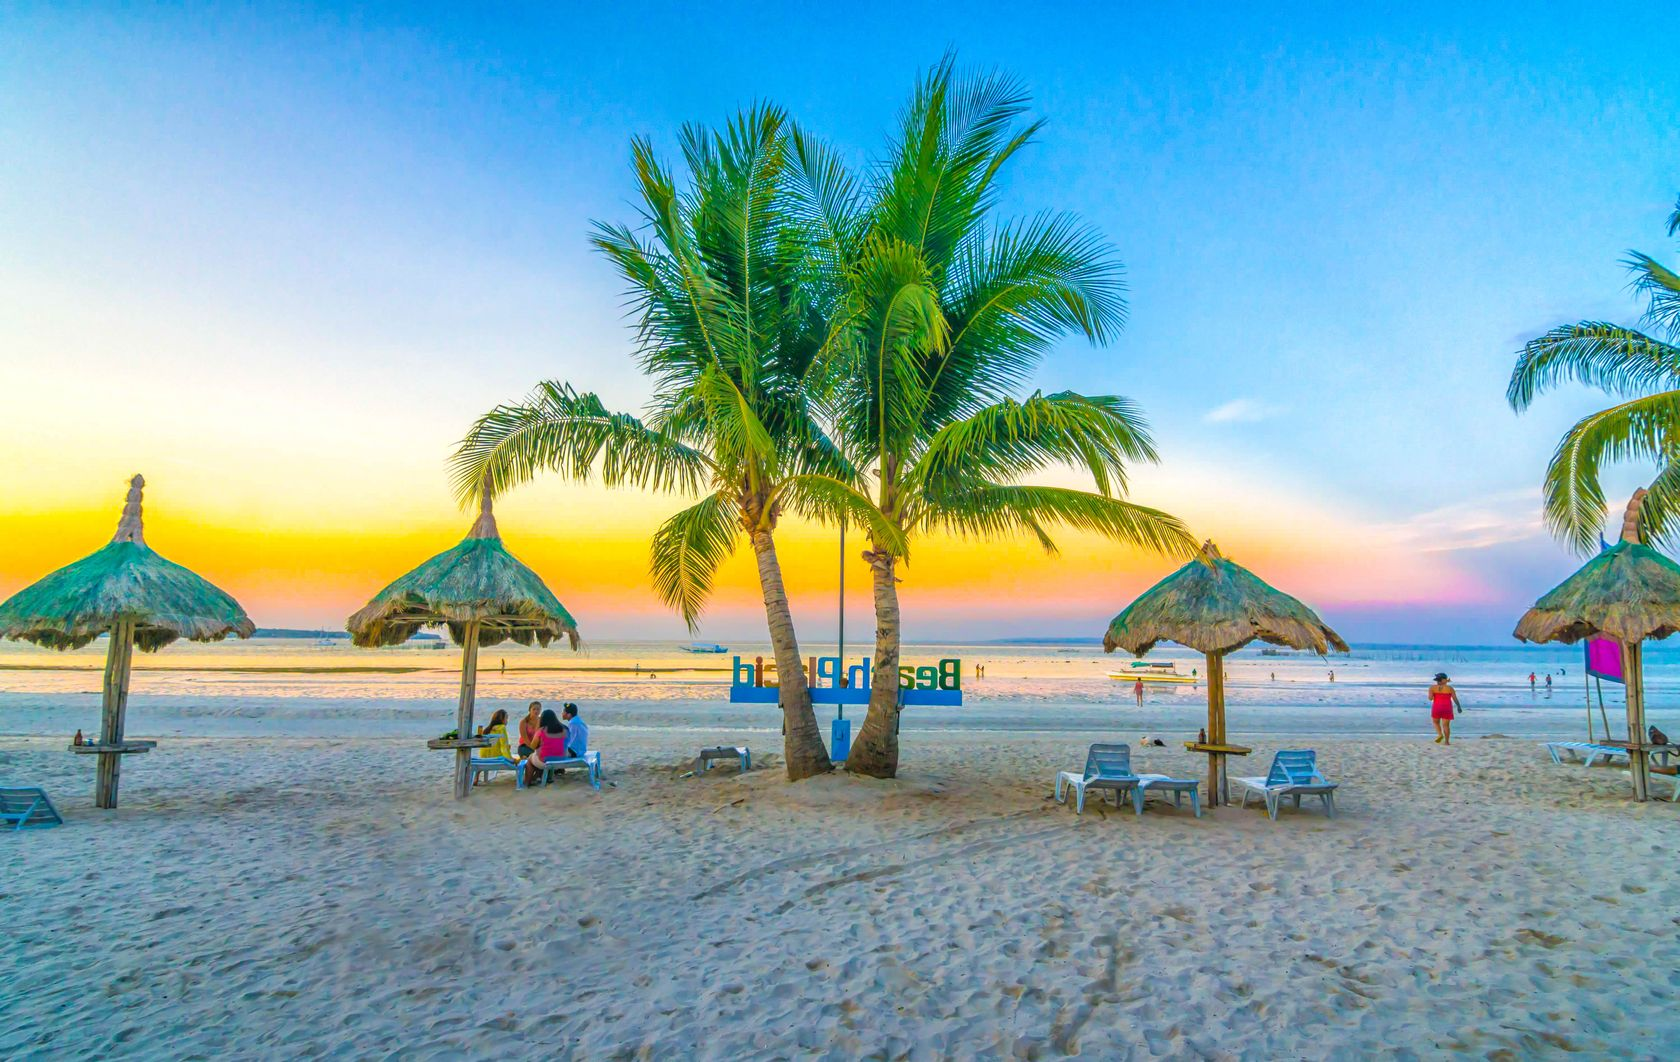 Tropical sandy beach with palm trees and huts with people lounging about in Bantayan Island, one of the best places to visit in the Philippines